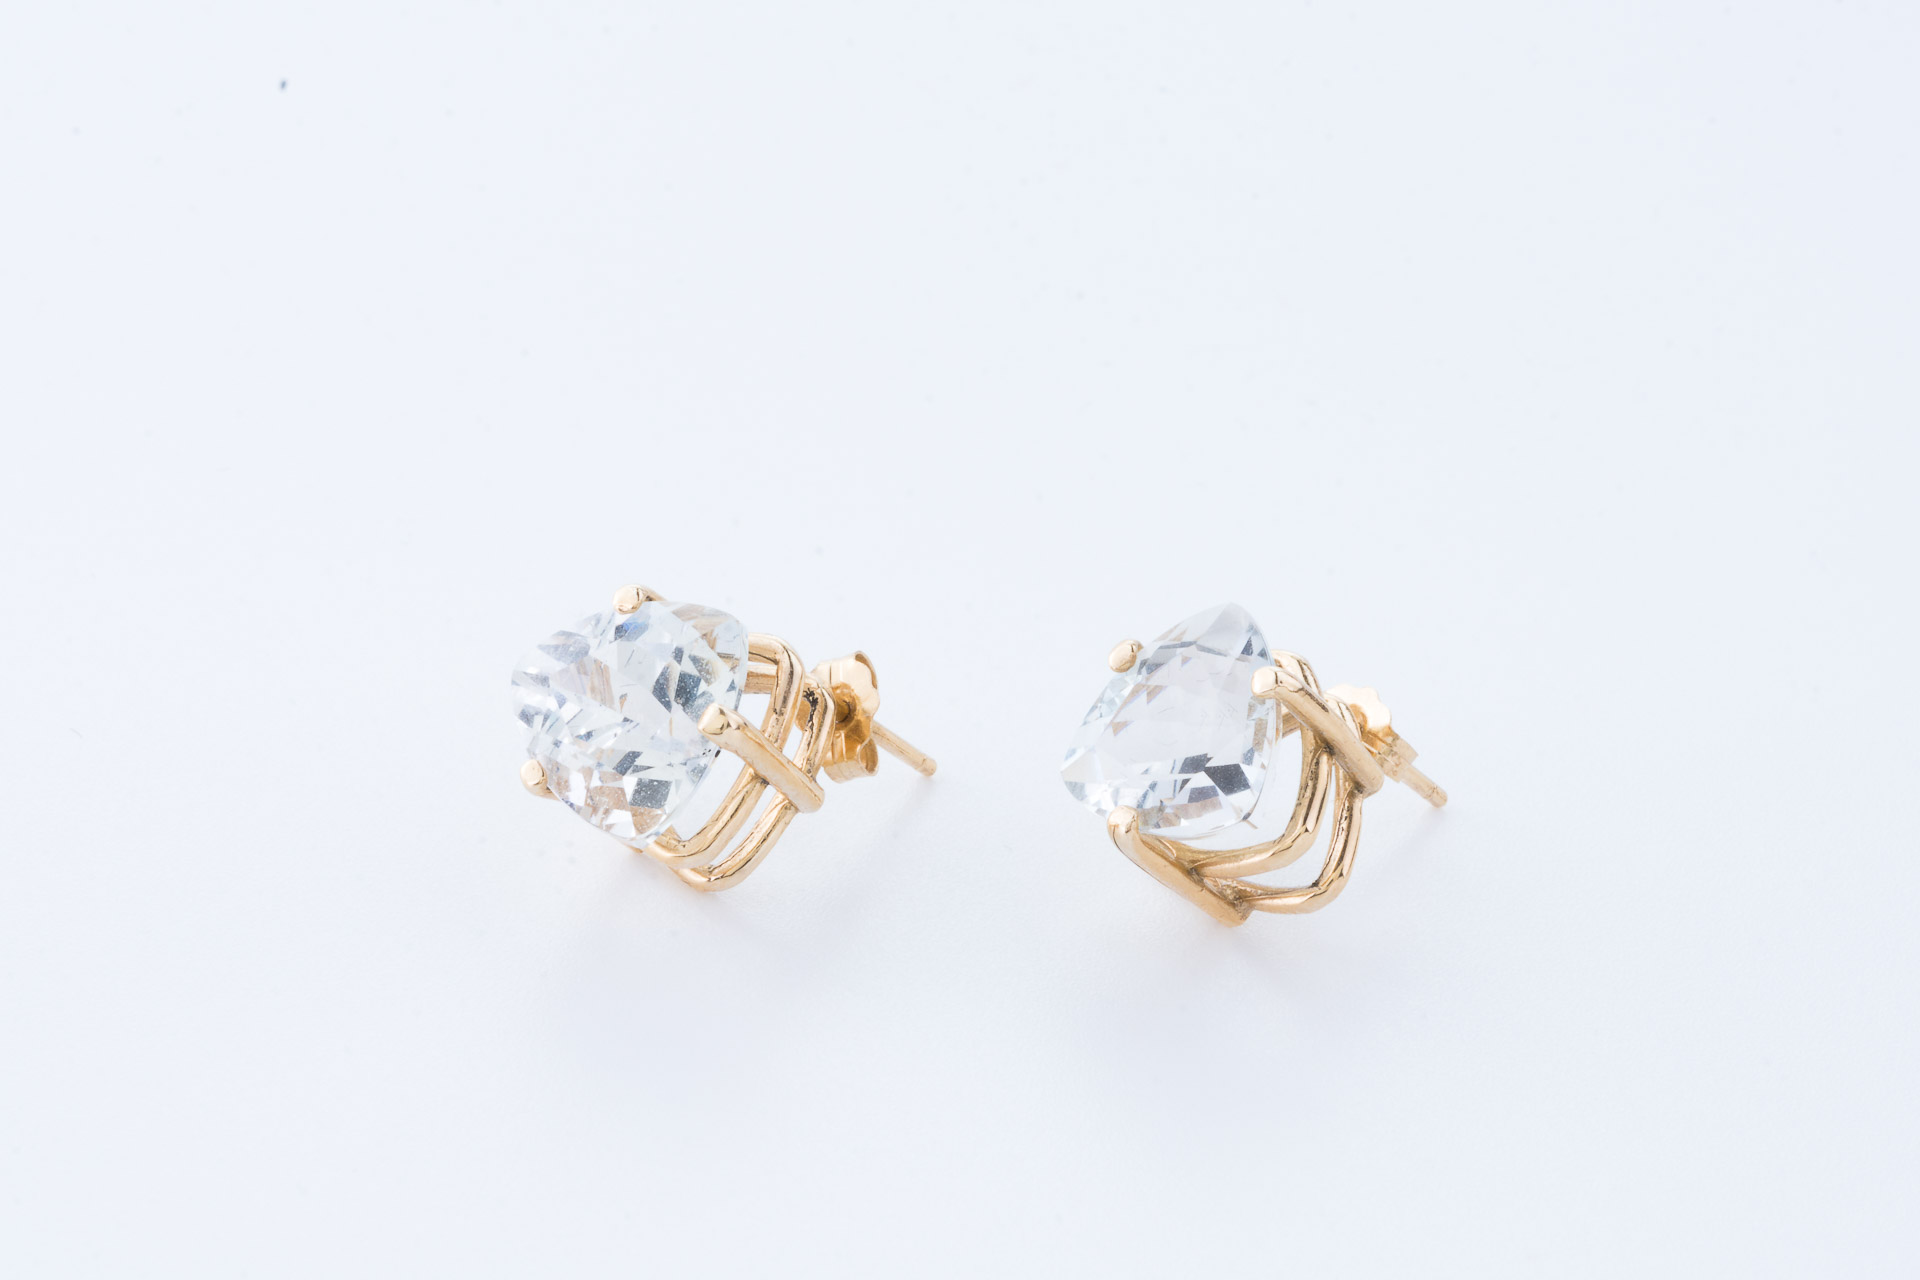 gold earrings topaz collection yg yellow products earring ef white diamond drop